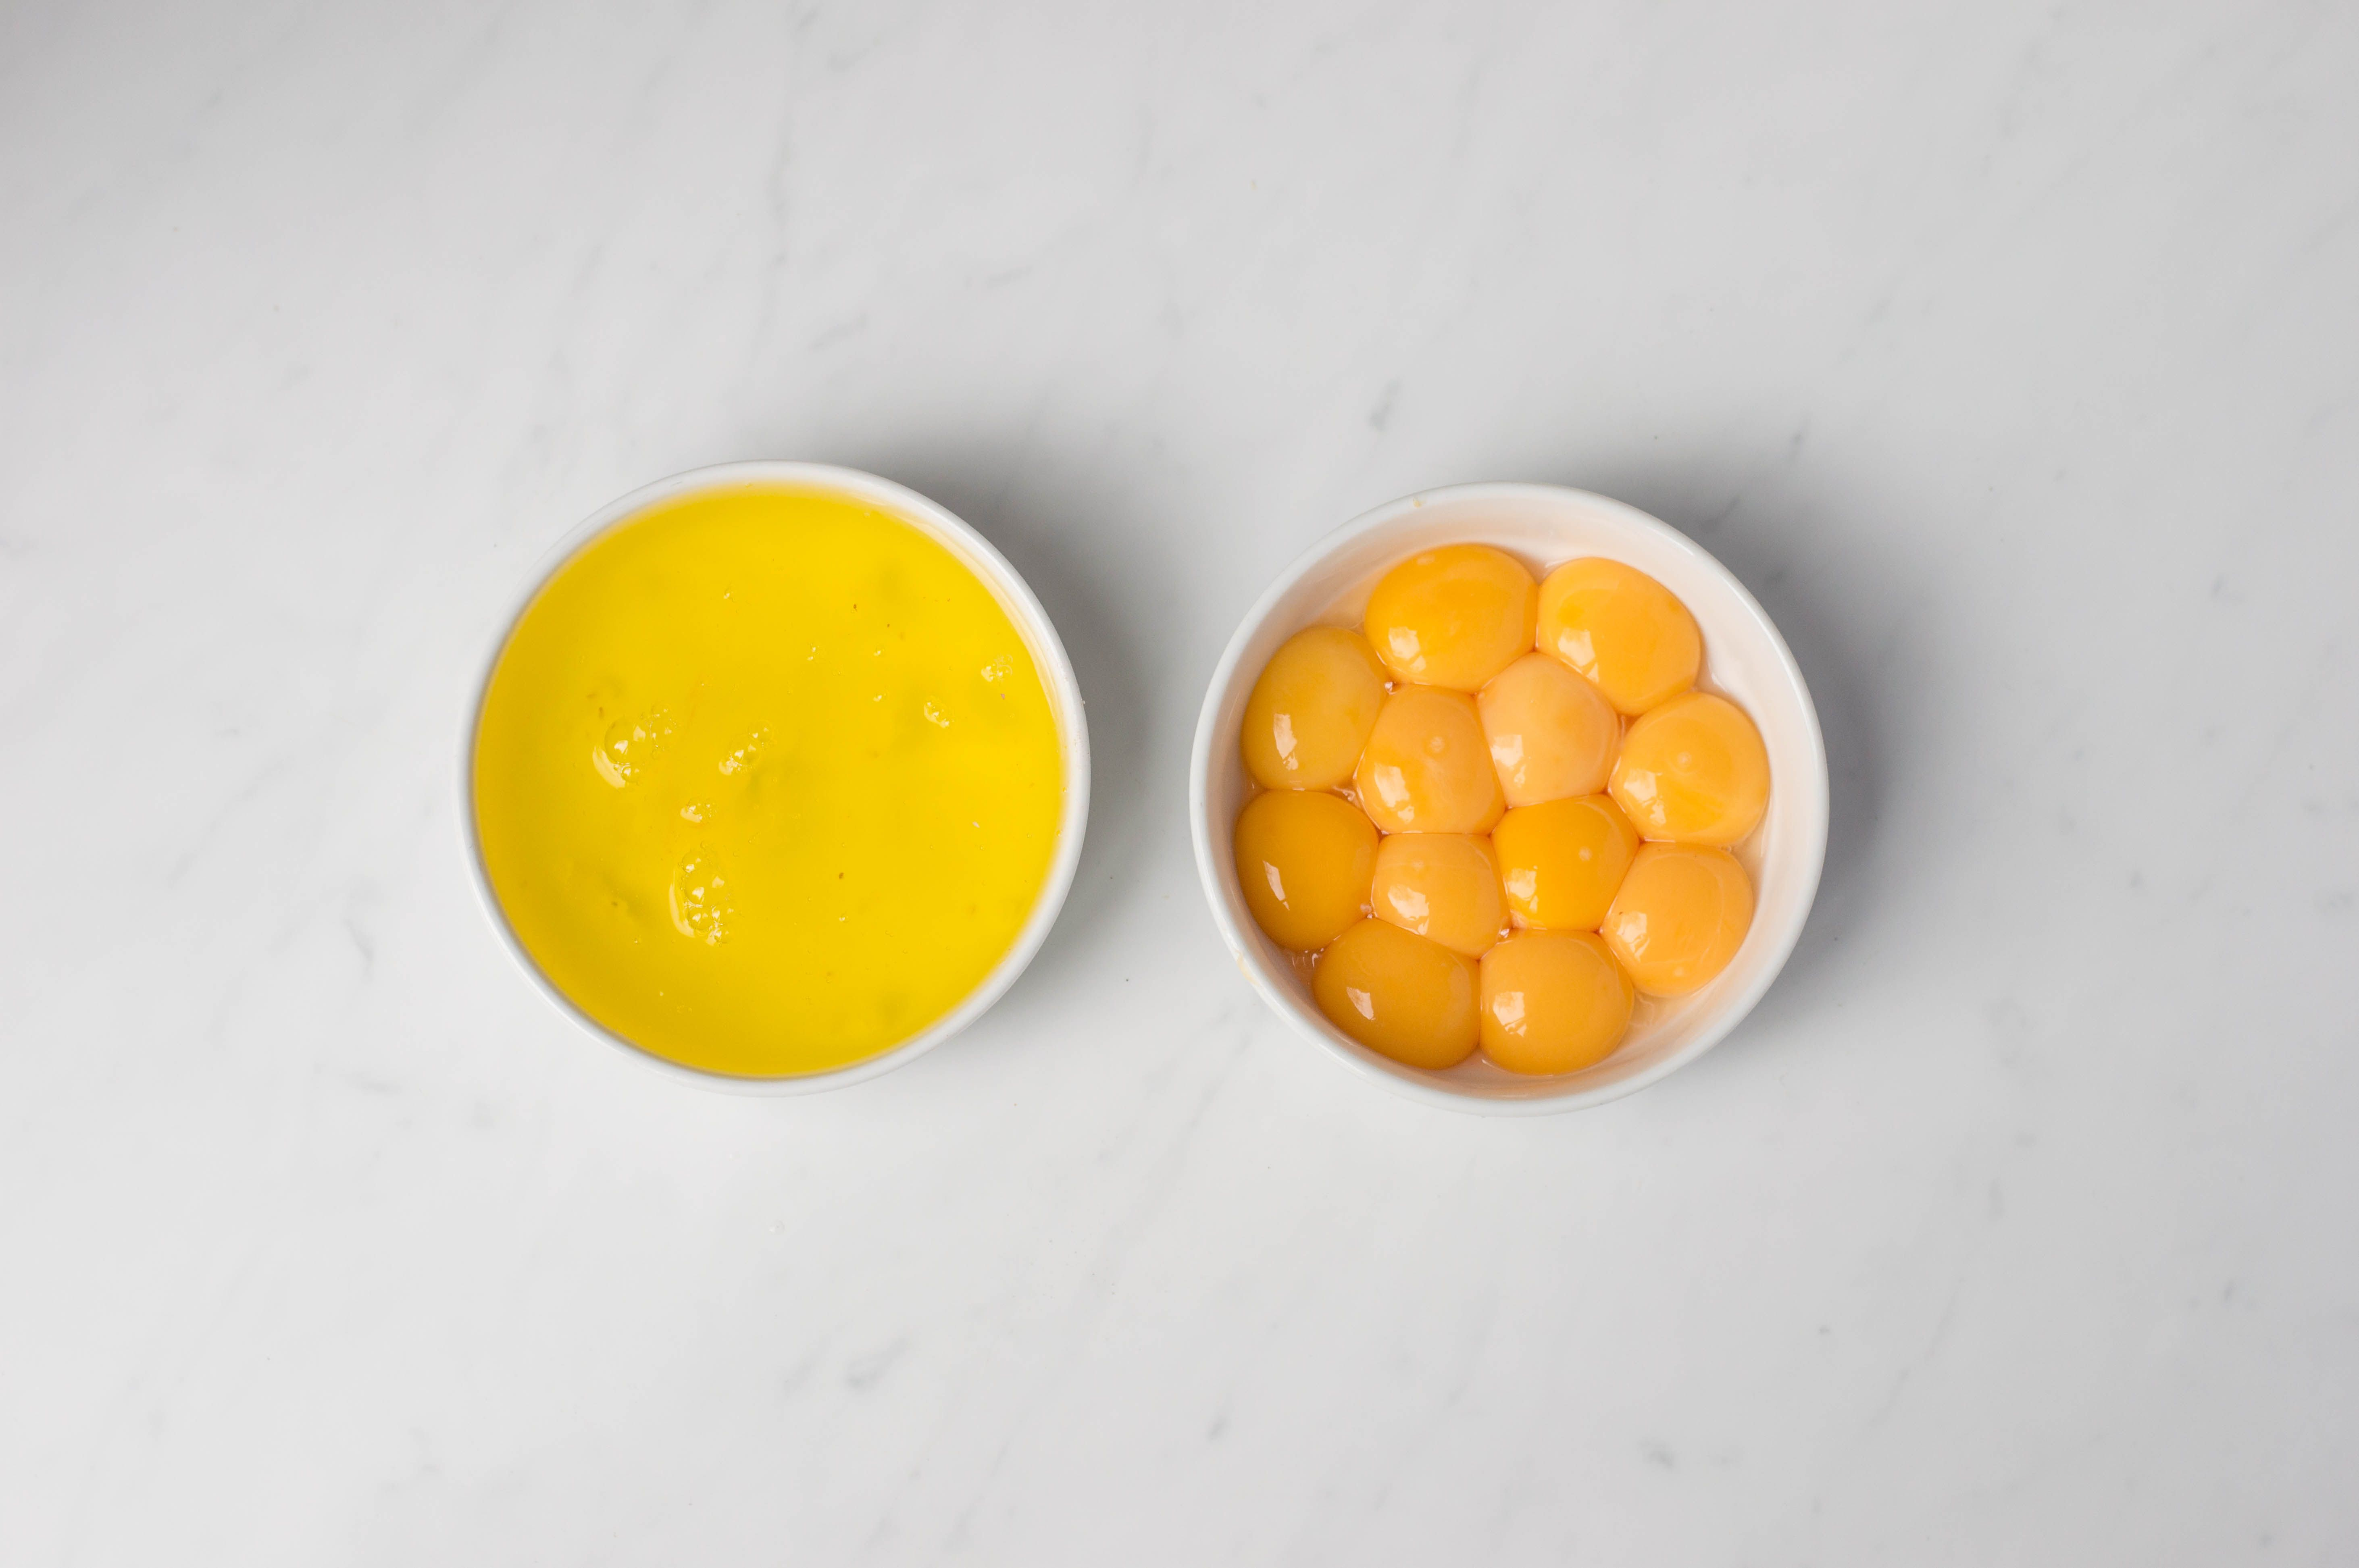 Egg yolks and egg whites in two separate bowls